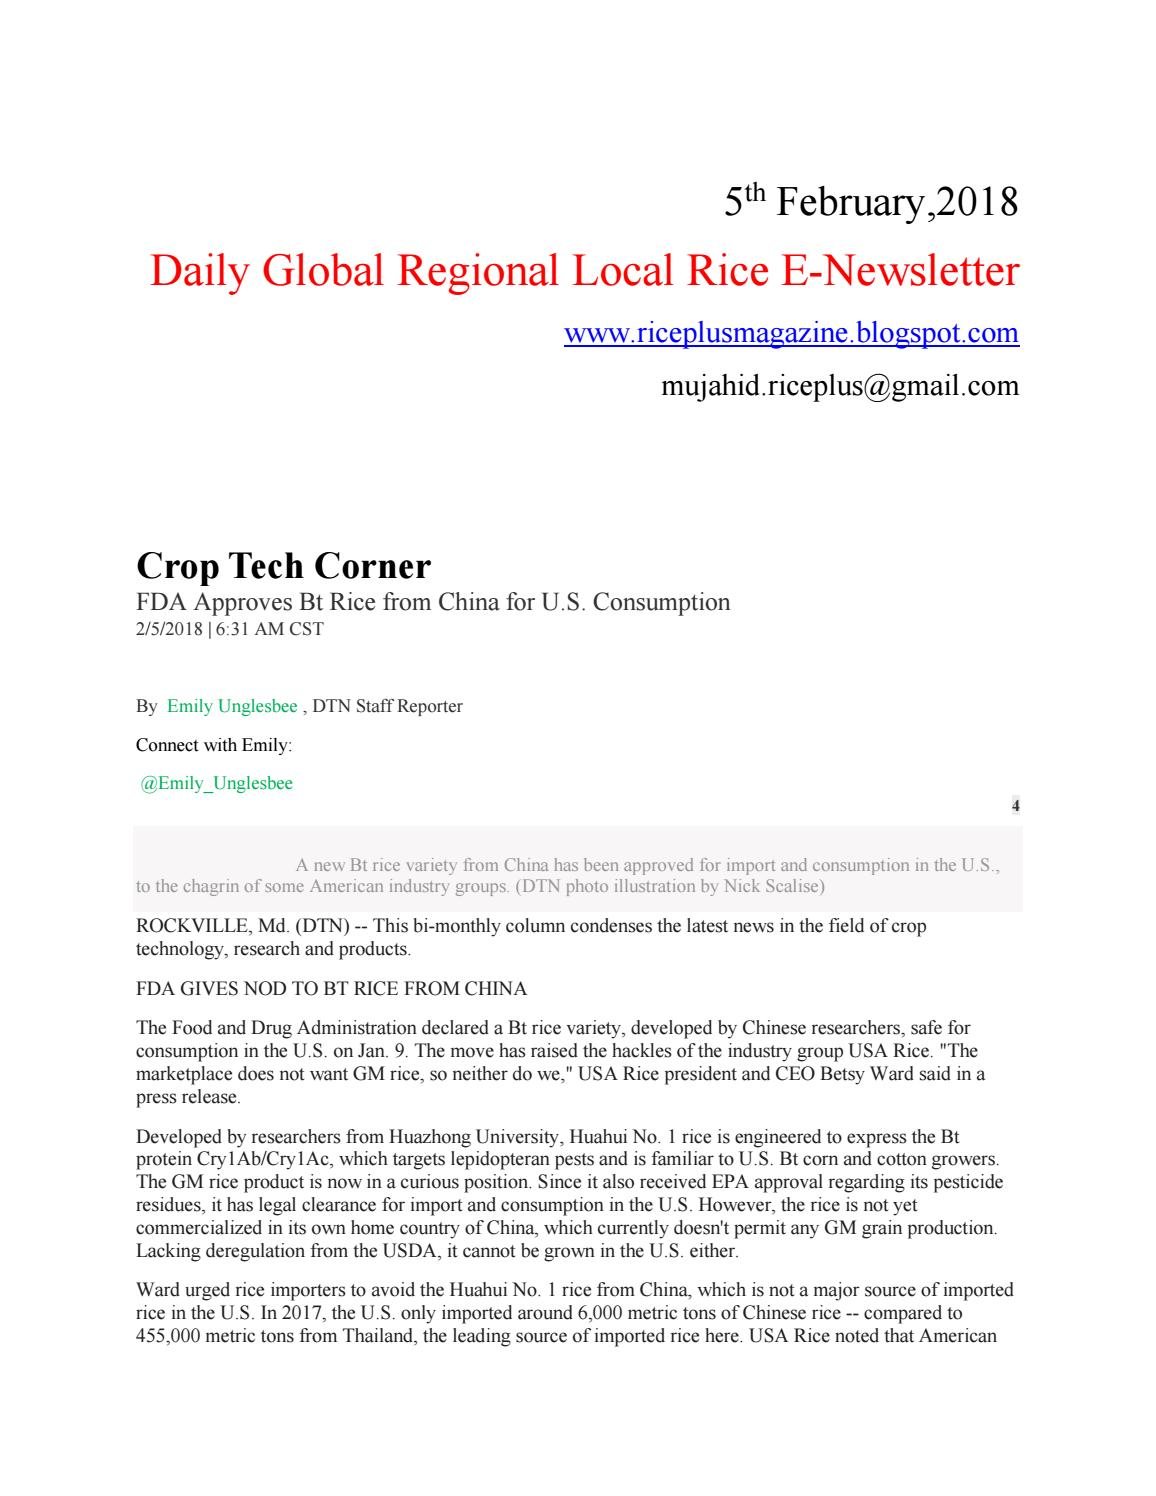 5th february,2018 daily global regional local rice e newsletter by DAILY  RICE NEWS LETTER - issuu